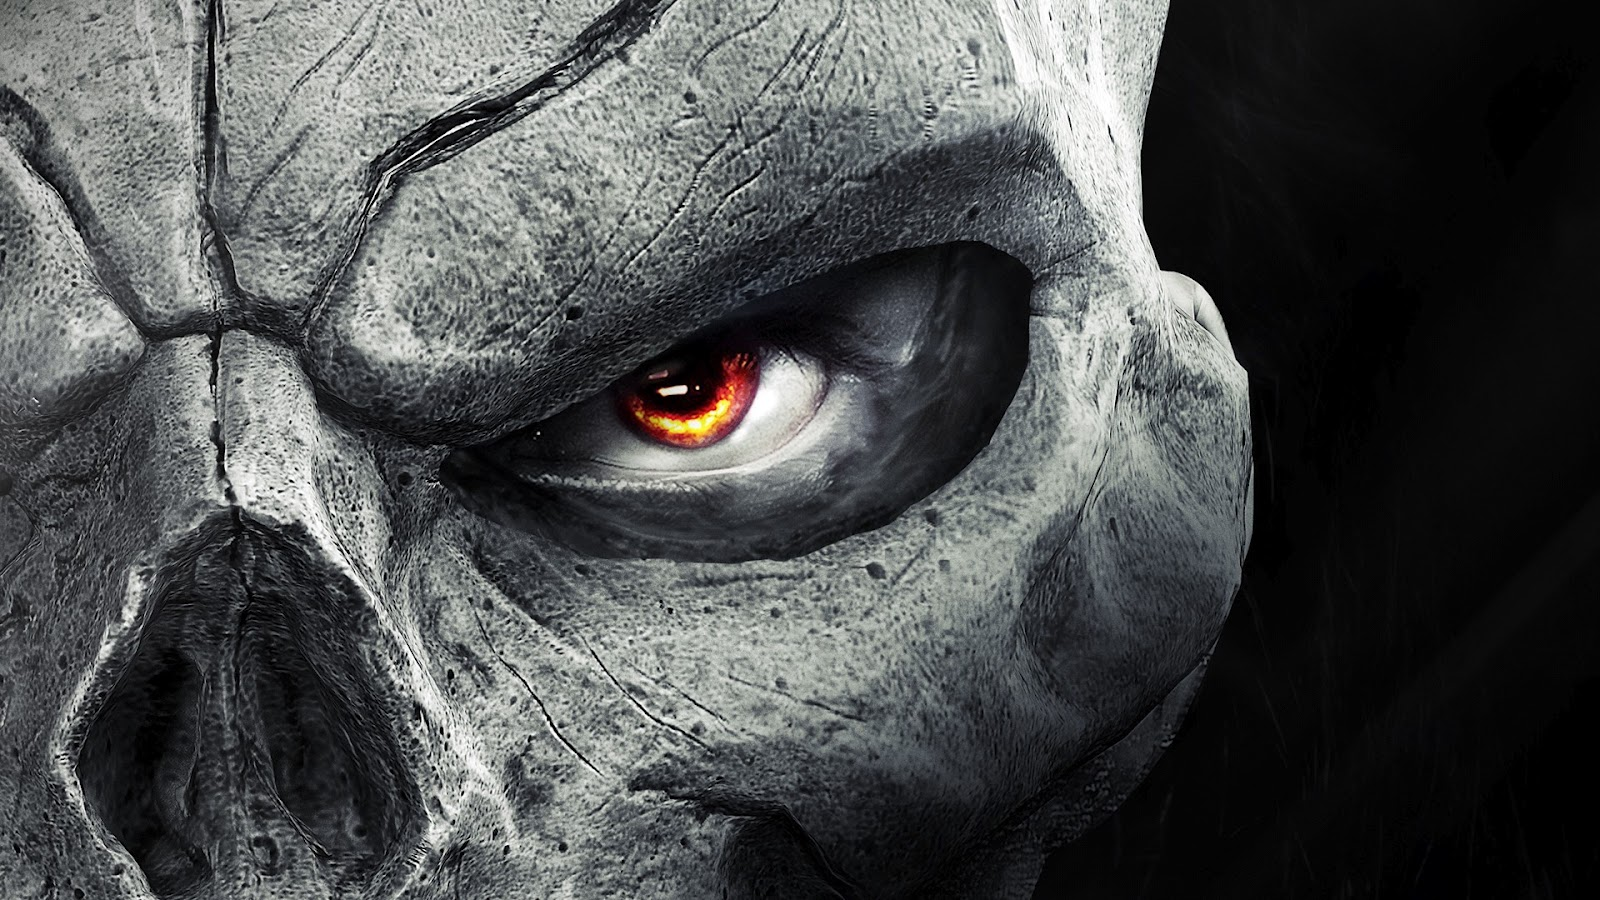 Skull Mask Flaming Eyes HD Wallpaper Download HD Video Game Wallpapers 1600x900